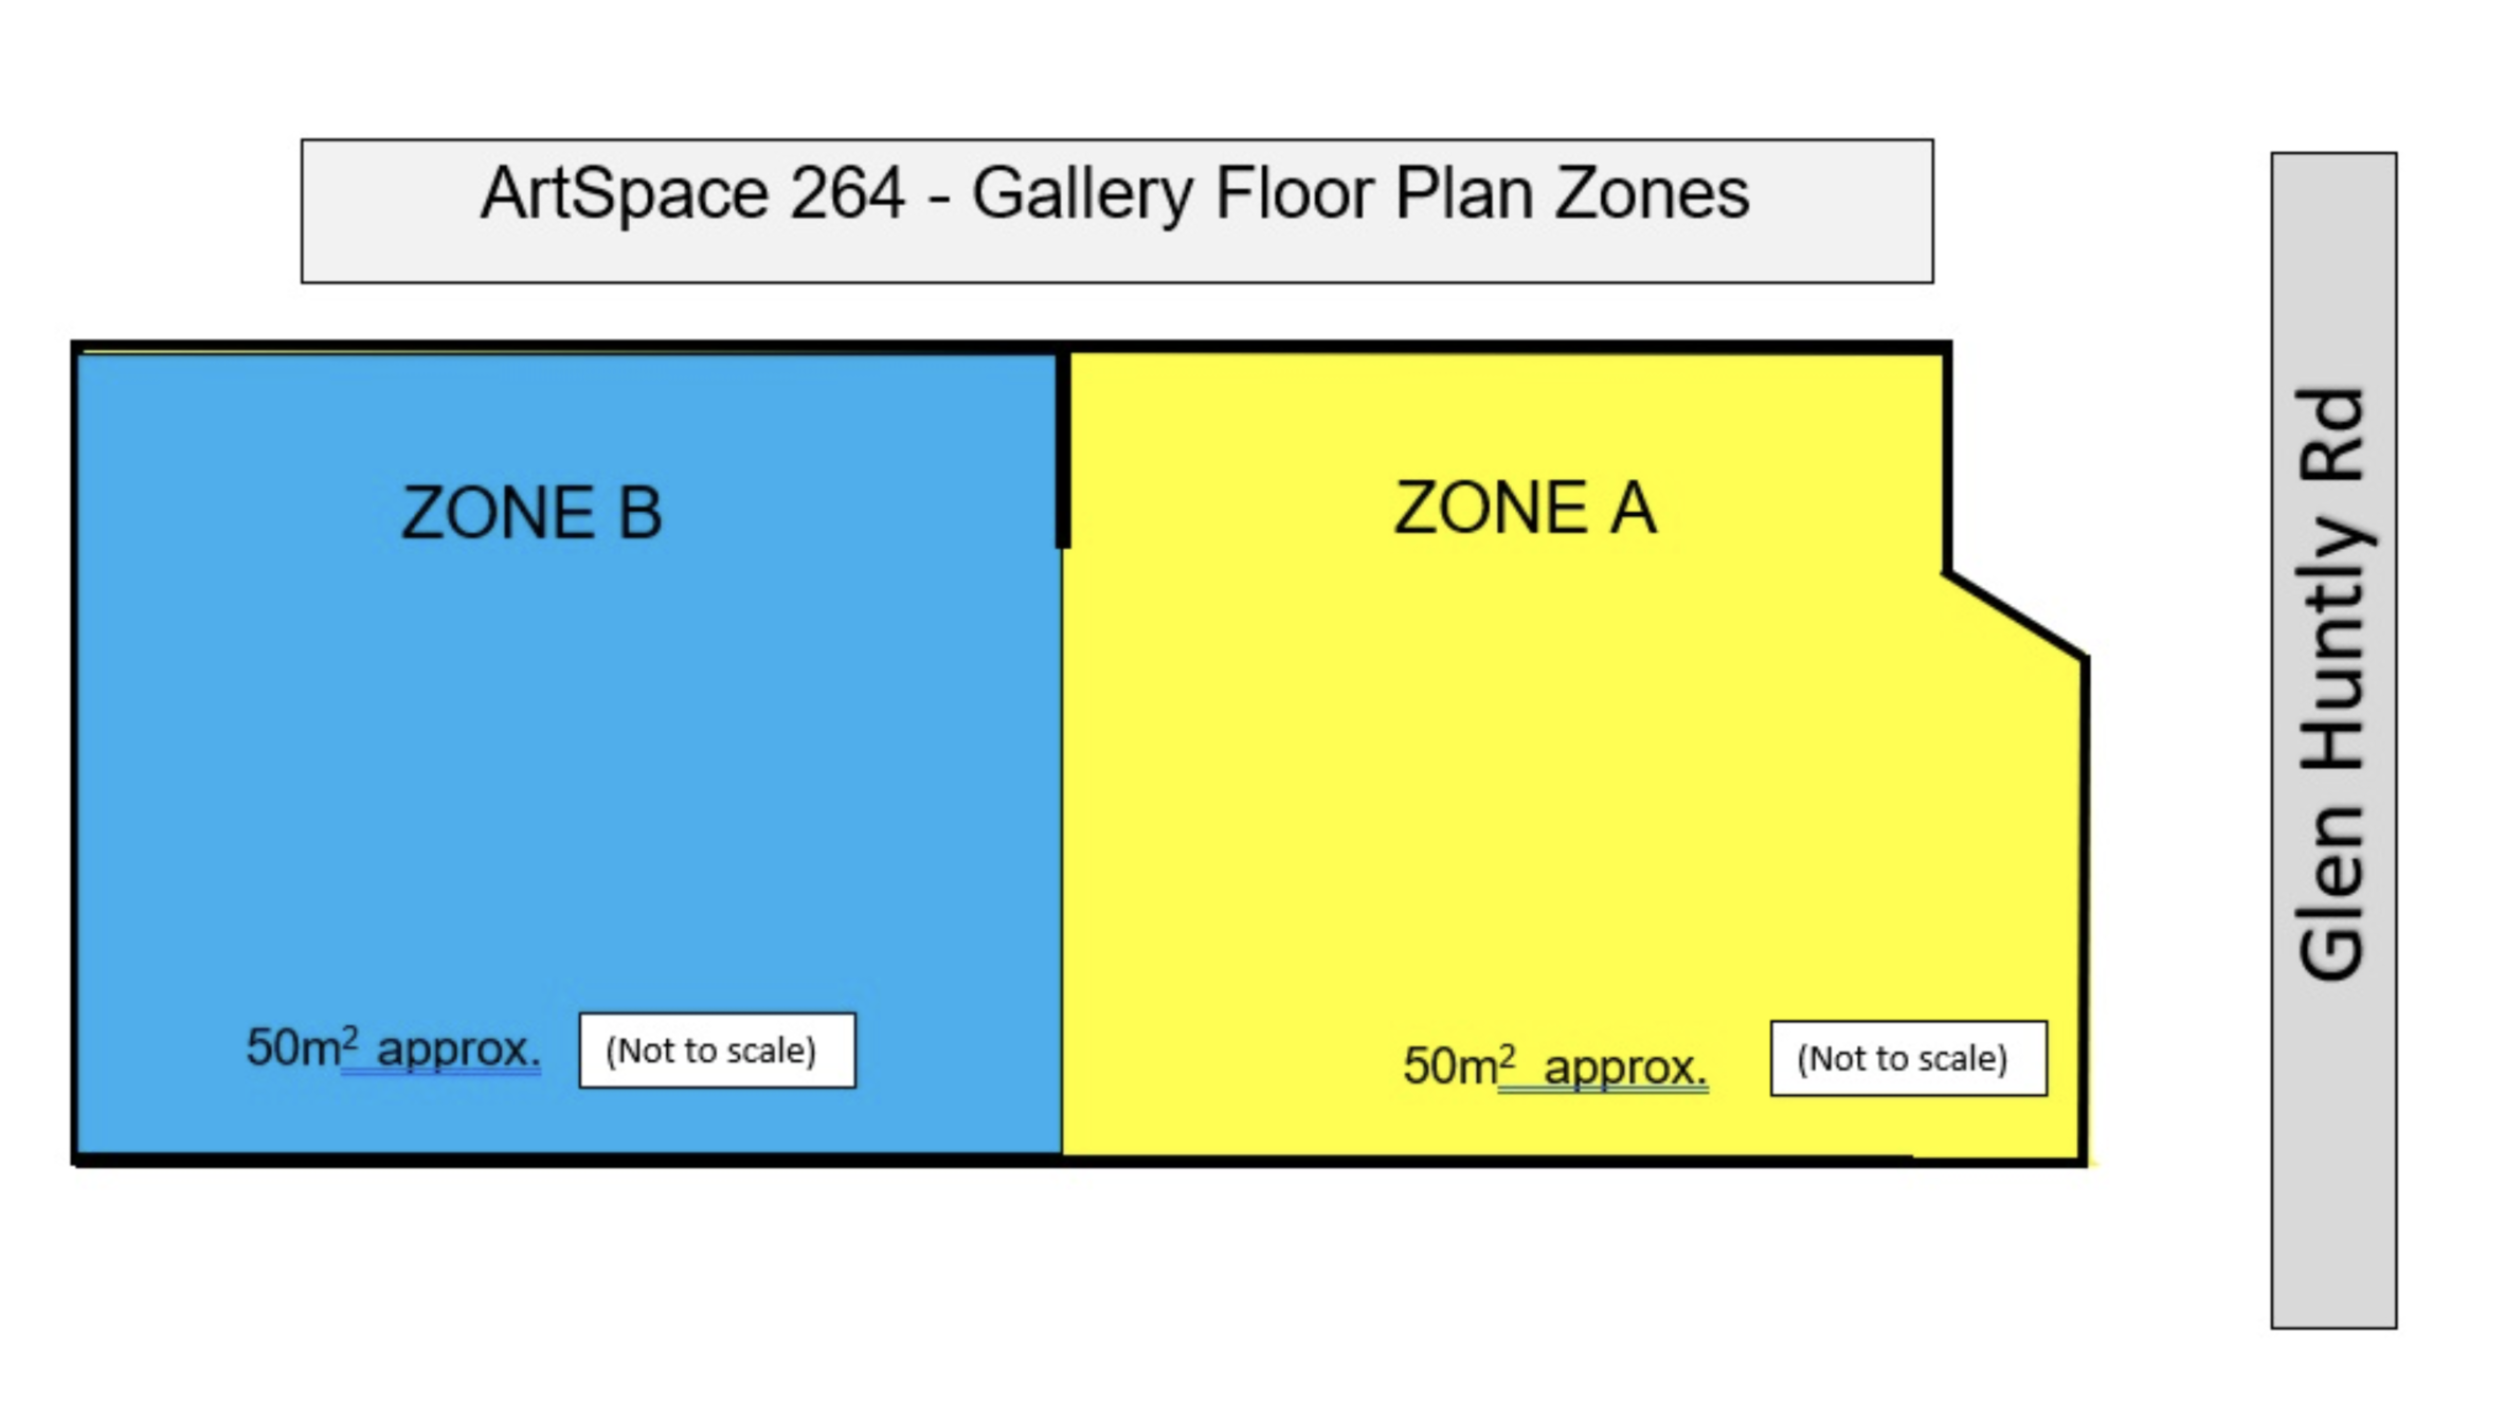 ARTSPACE 264 GALLERY HAS TWO EXHIBITION ZONES - Zone A & Zone B.Zone A has window exposure andZone B is at the rear of the gallery